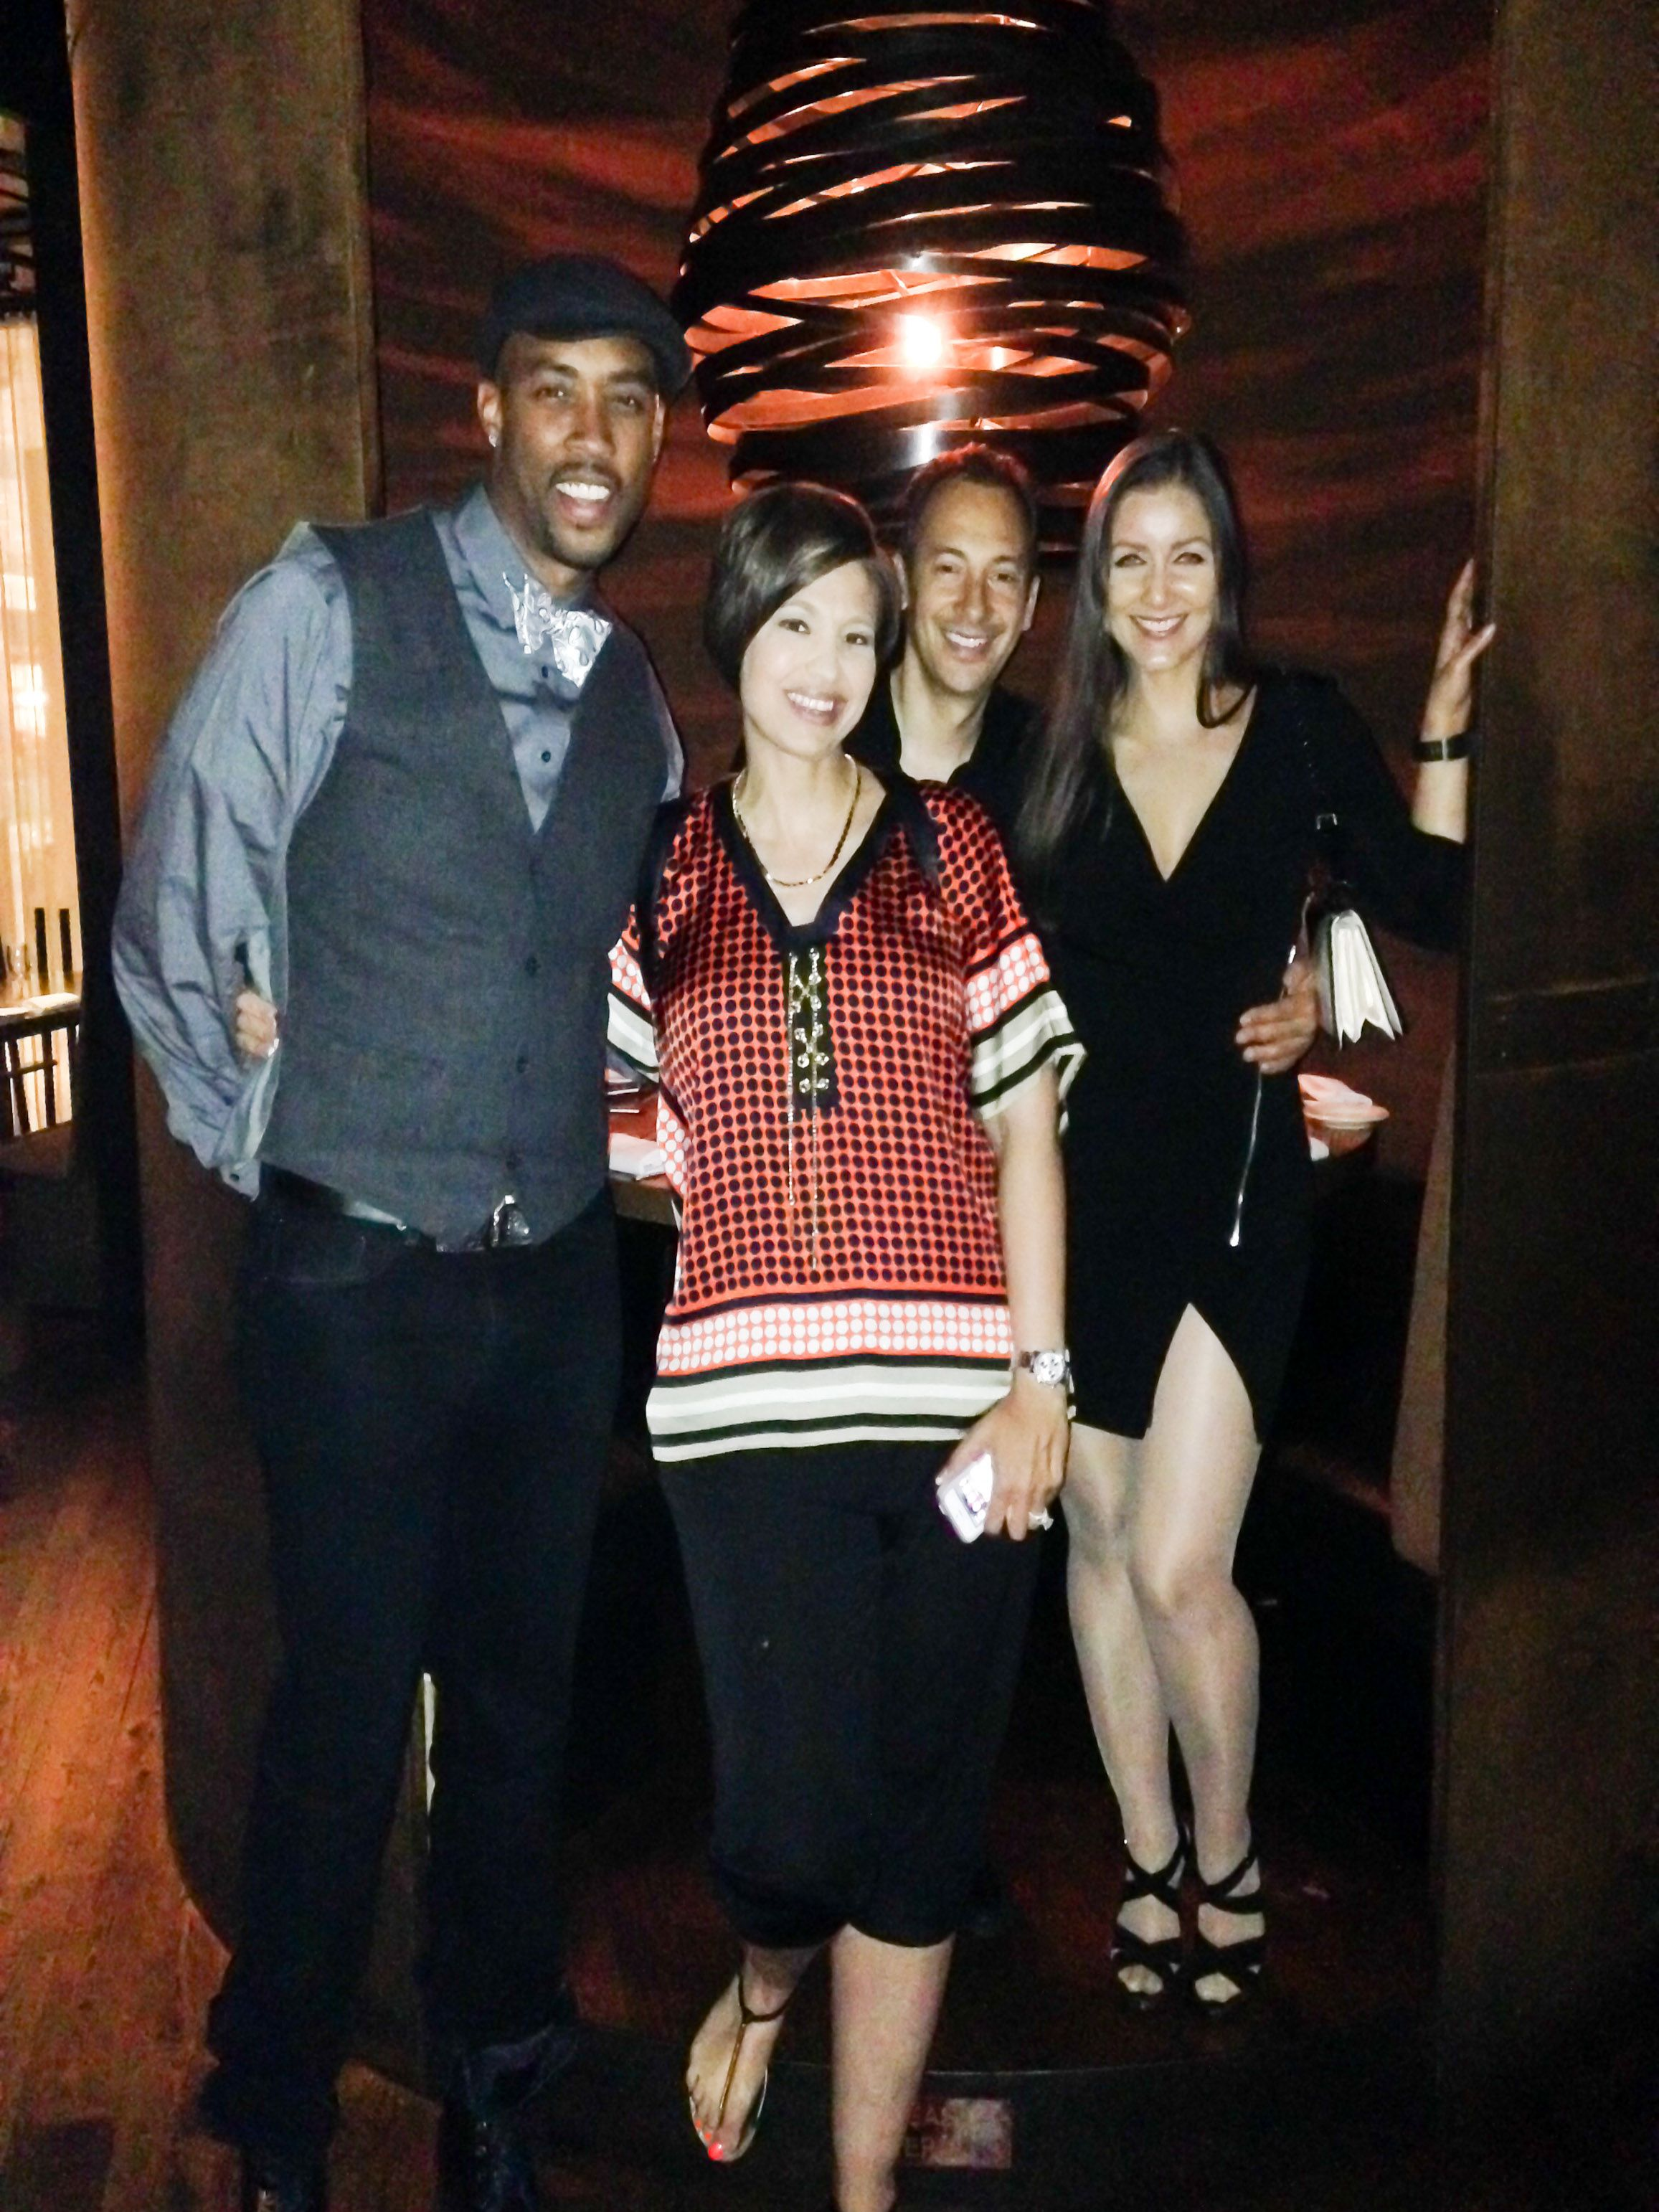 After Dinner with #MontellJordan #CarlosKeyes #NanaGouvea #KristenJordan in New York. Check out Montell's New Book